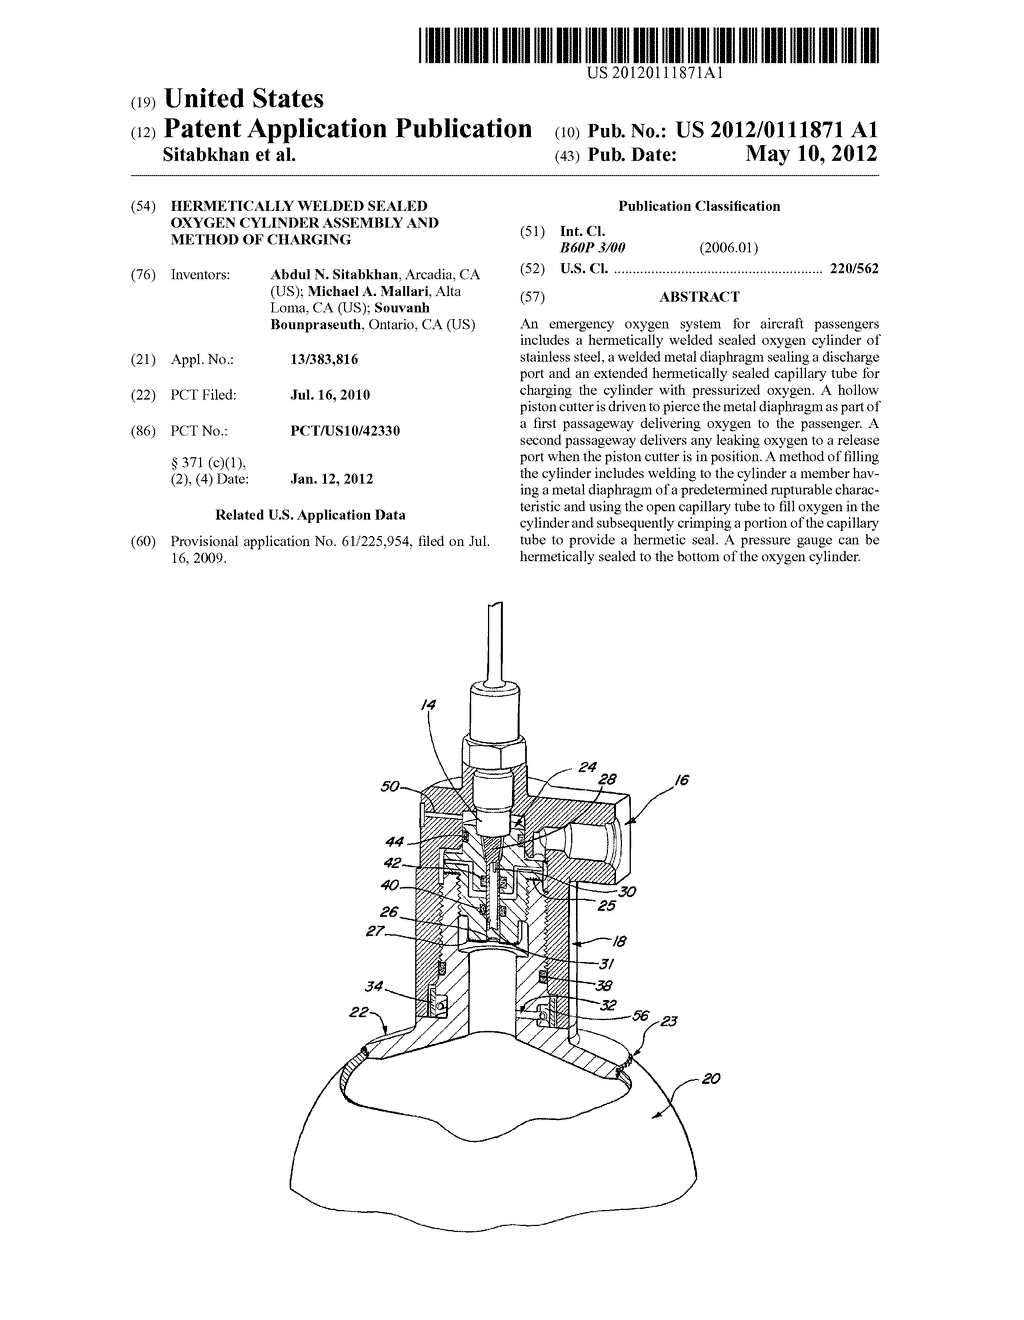 HERMETICALLY WELDED SEALED OXYGEN CYLINDER ASSEMBLY AND METHOD OF CHARGING - diagram, schematic, and image 01